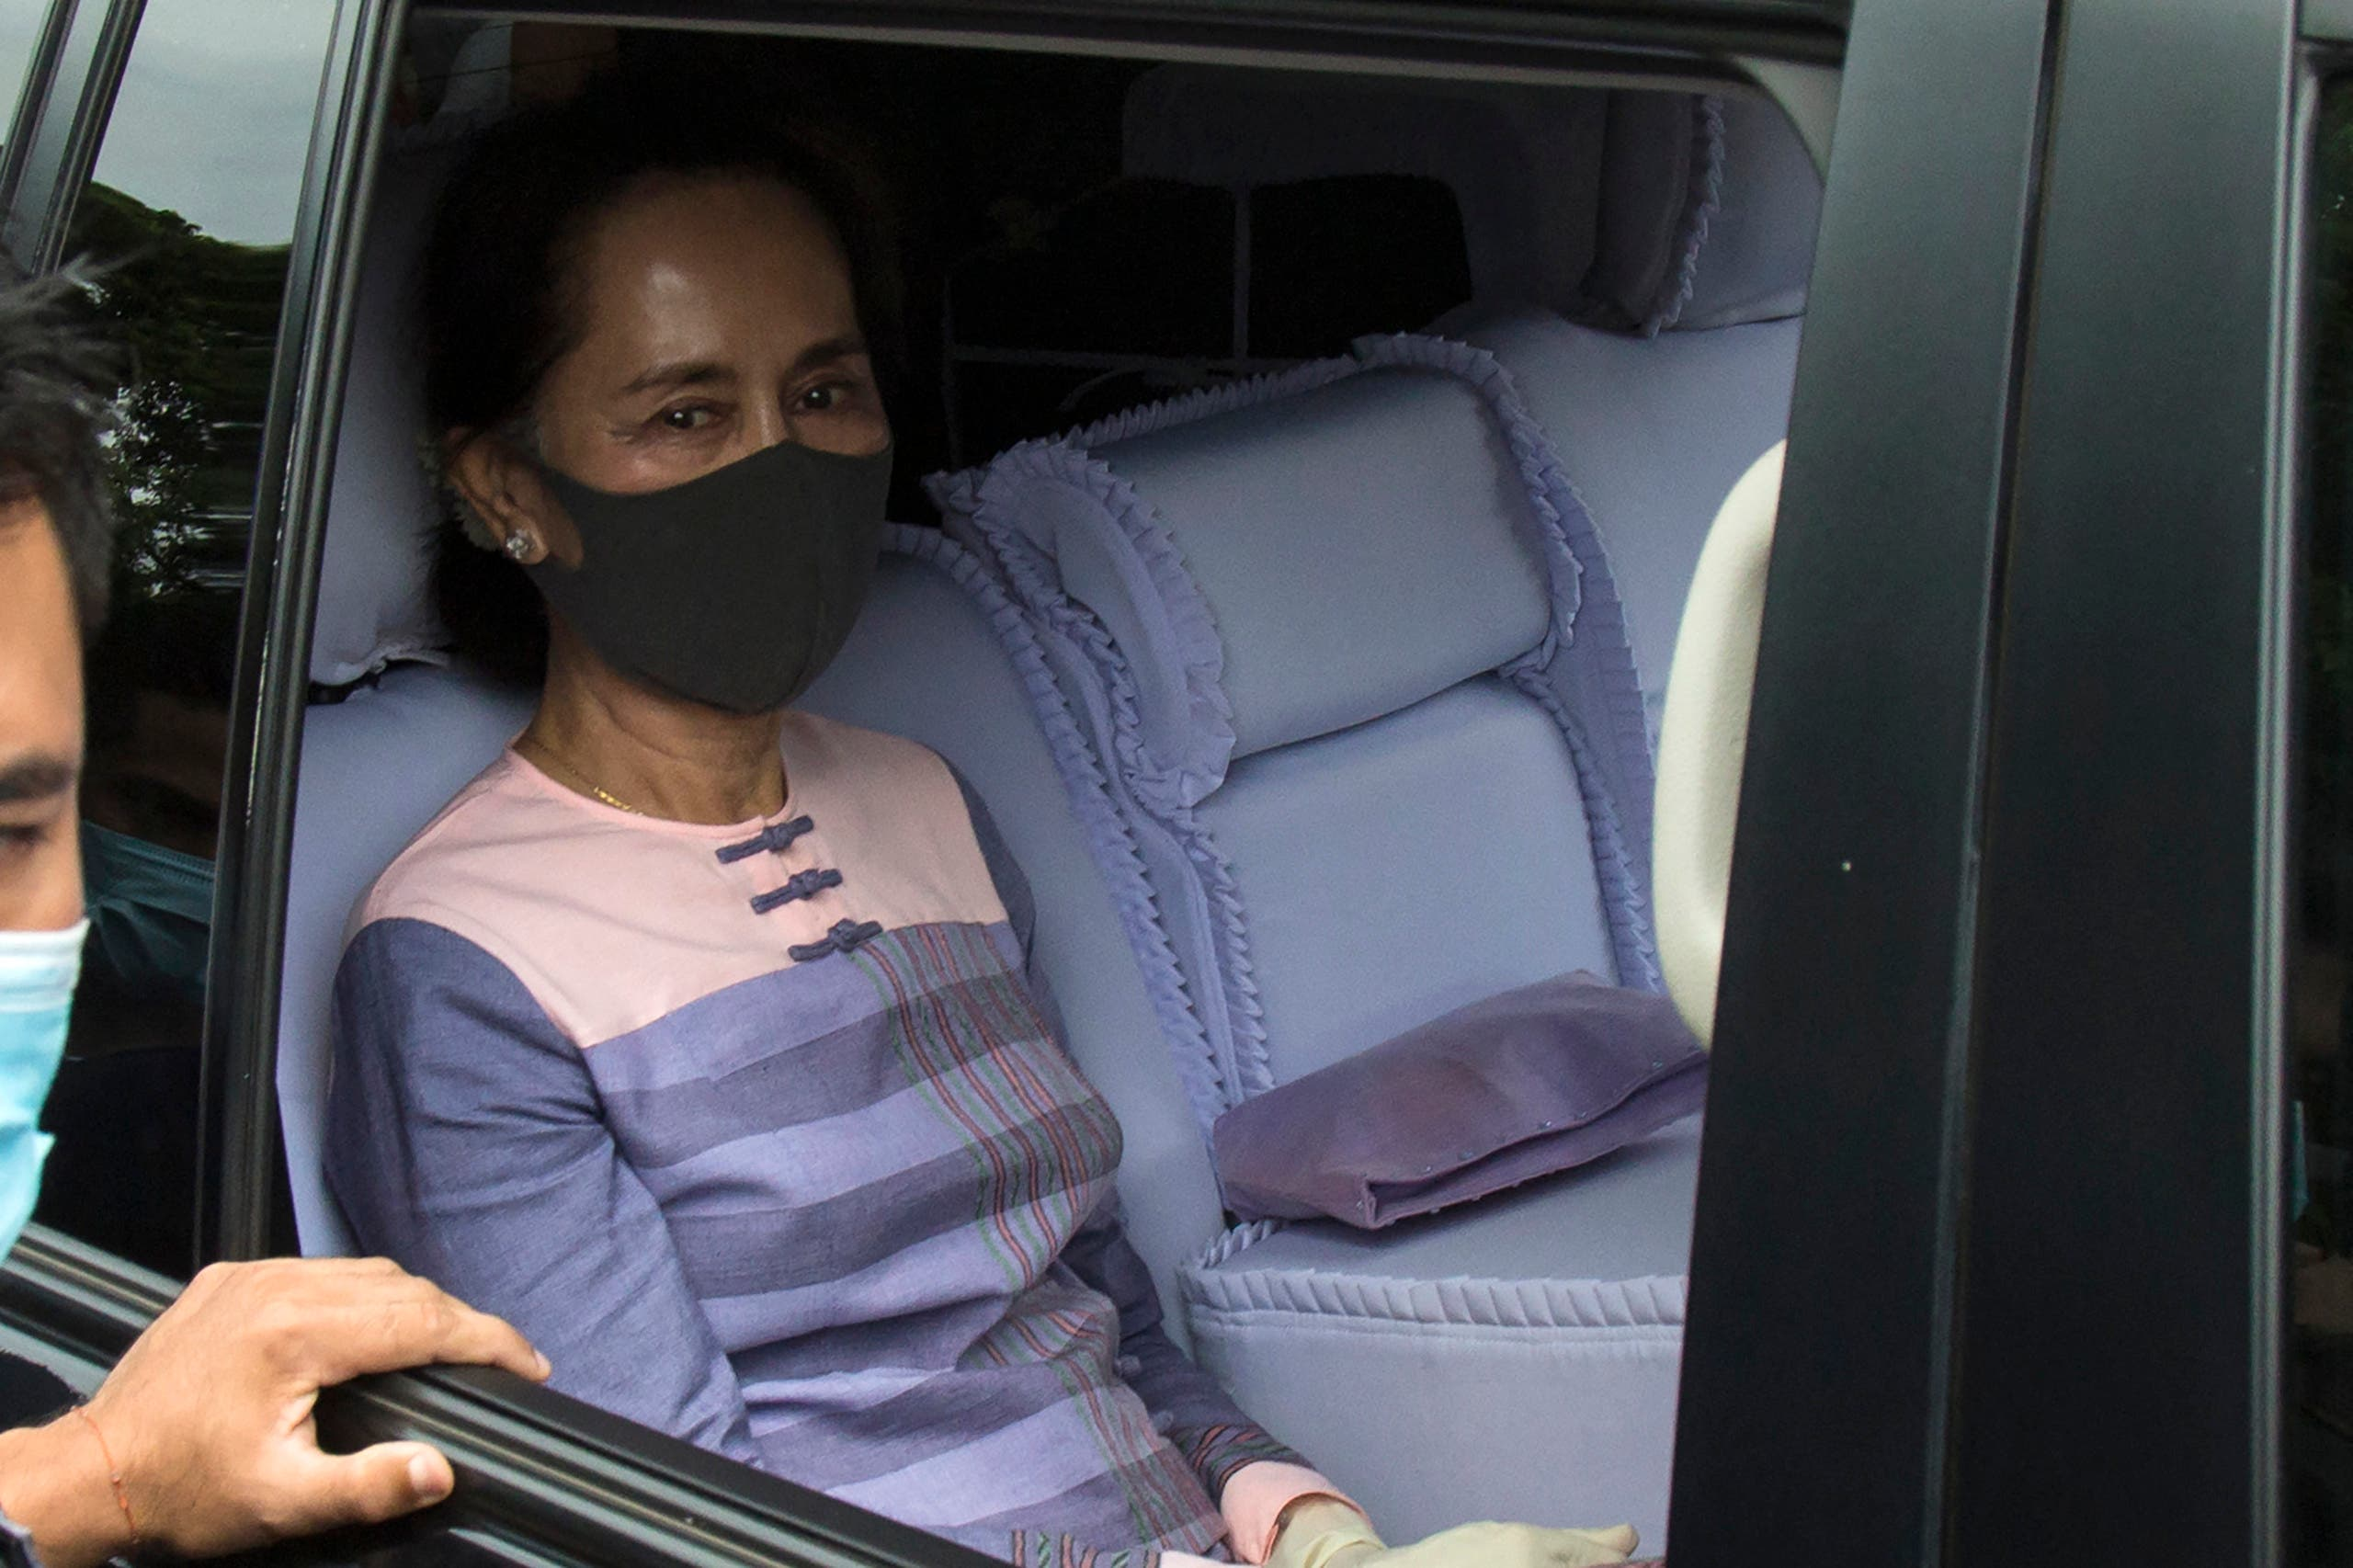 Myanmar State Counsellor Aung San Suu Kyi looks out from a vehicle as she leaves the Yangon southern district court after she submitted her application to run as a candidate in the upcoming 2020 general election in Yangon on August 4, 2020. Myanmar will hold its next general election on November 8, in a test for the country's fledgling democratic government led by Aung San Suu Kyi.